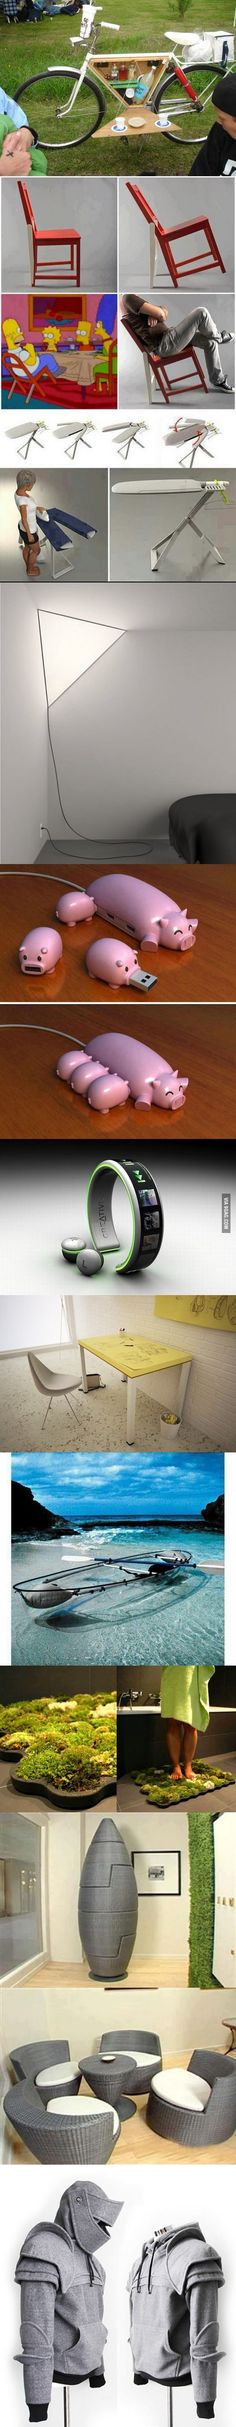 Shut Up And Take My Money inventions